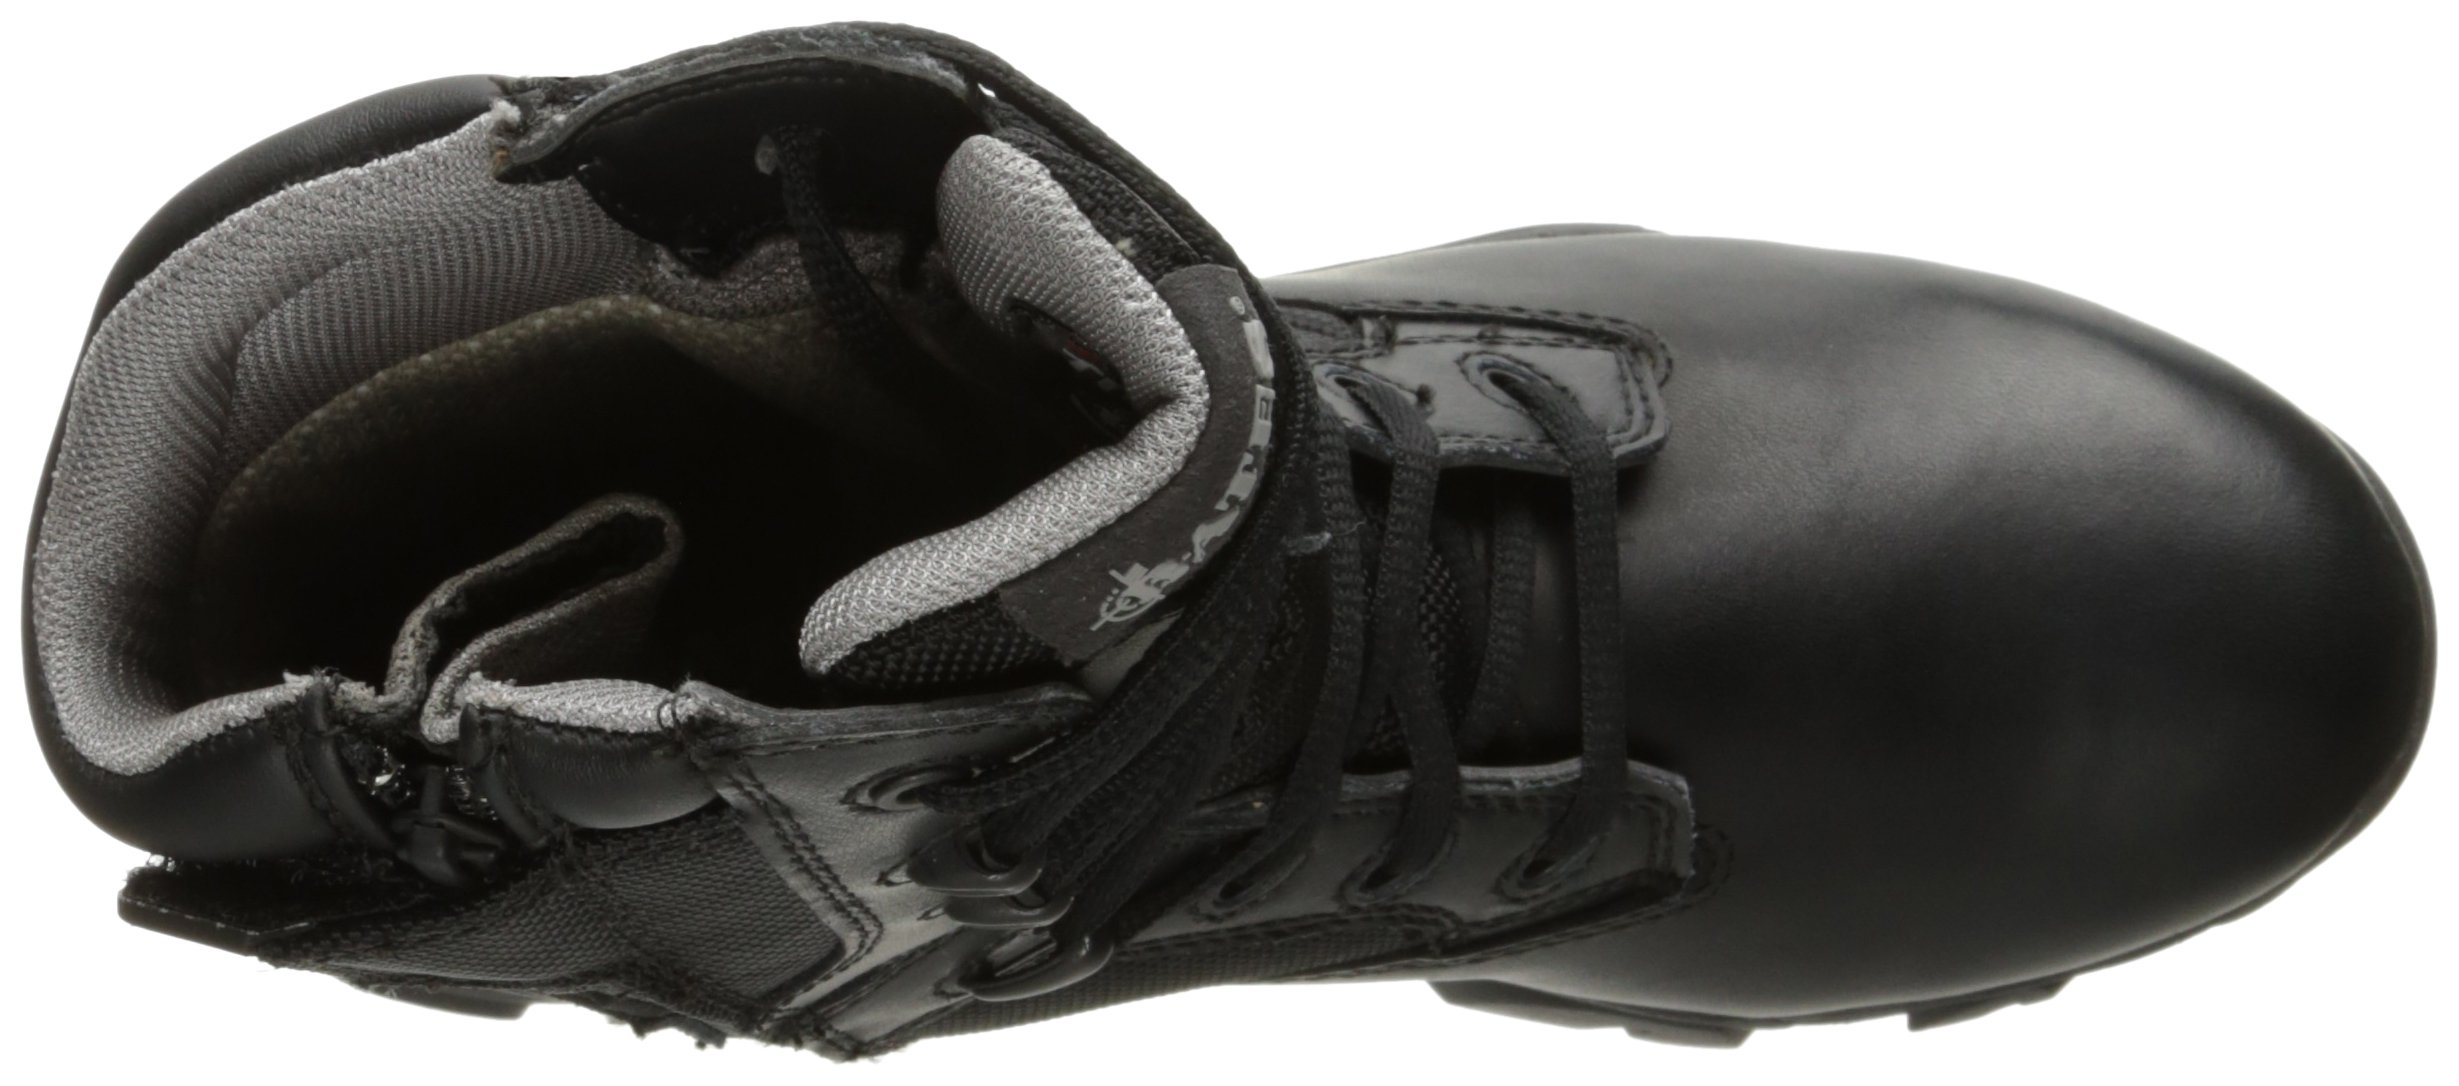 Bates Women's GX-8 Gore-Tex Insulated Side Zip Fire and Safety Shoe, Black, 9 M US by Bates (Image #8)